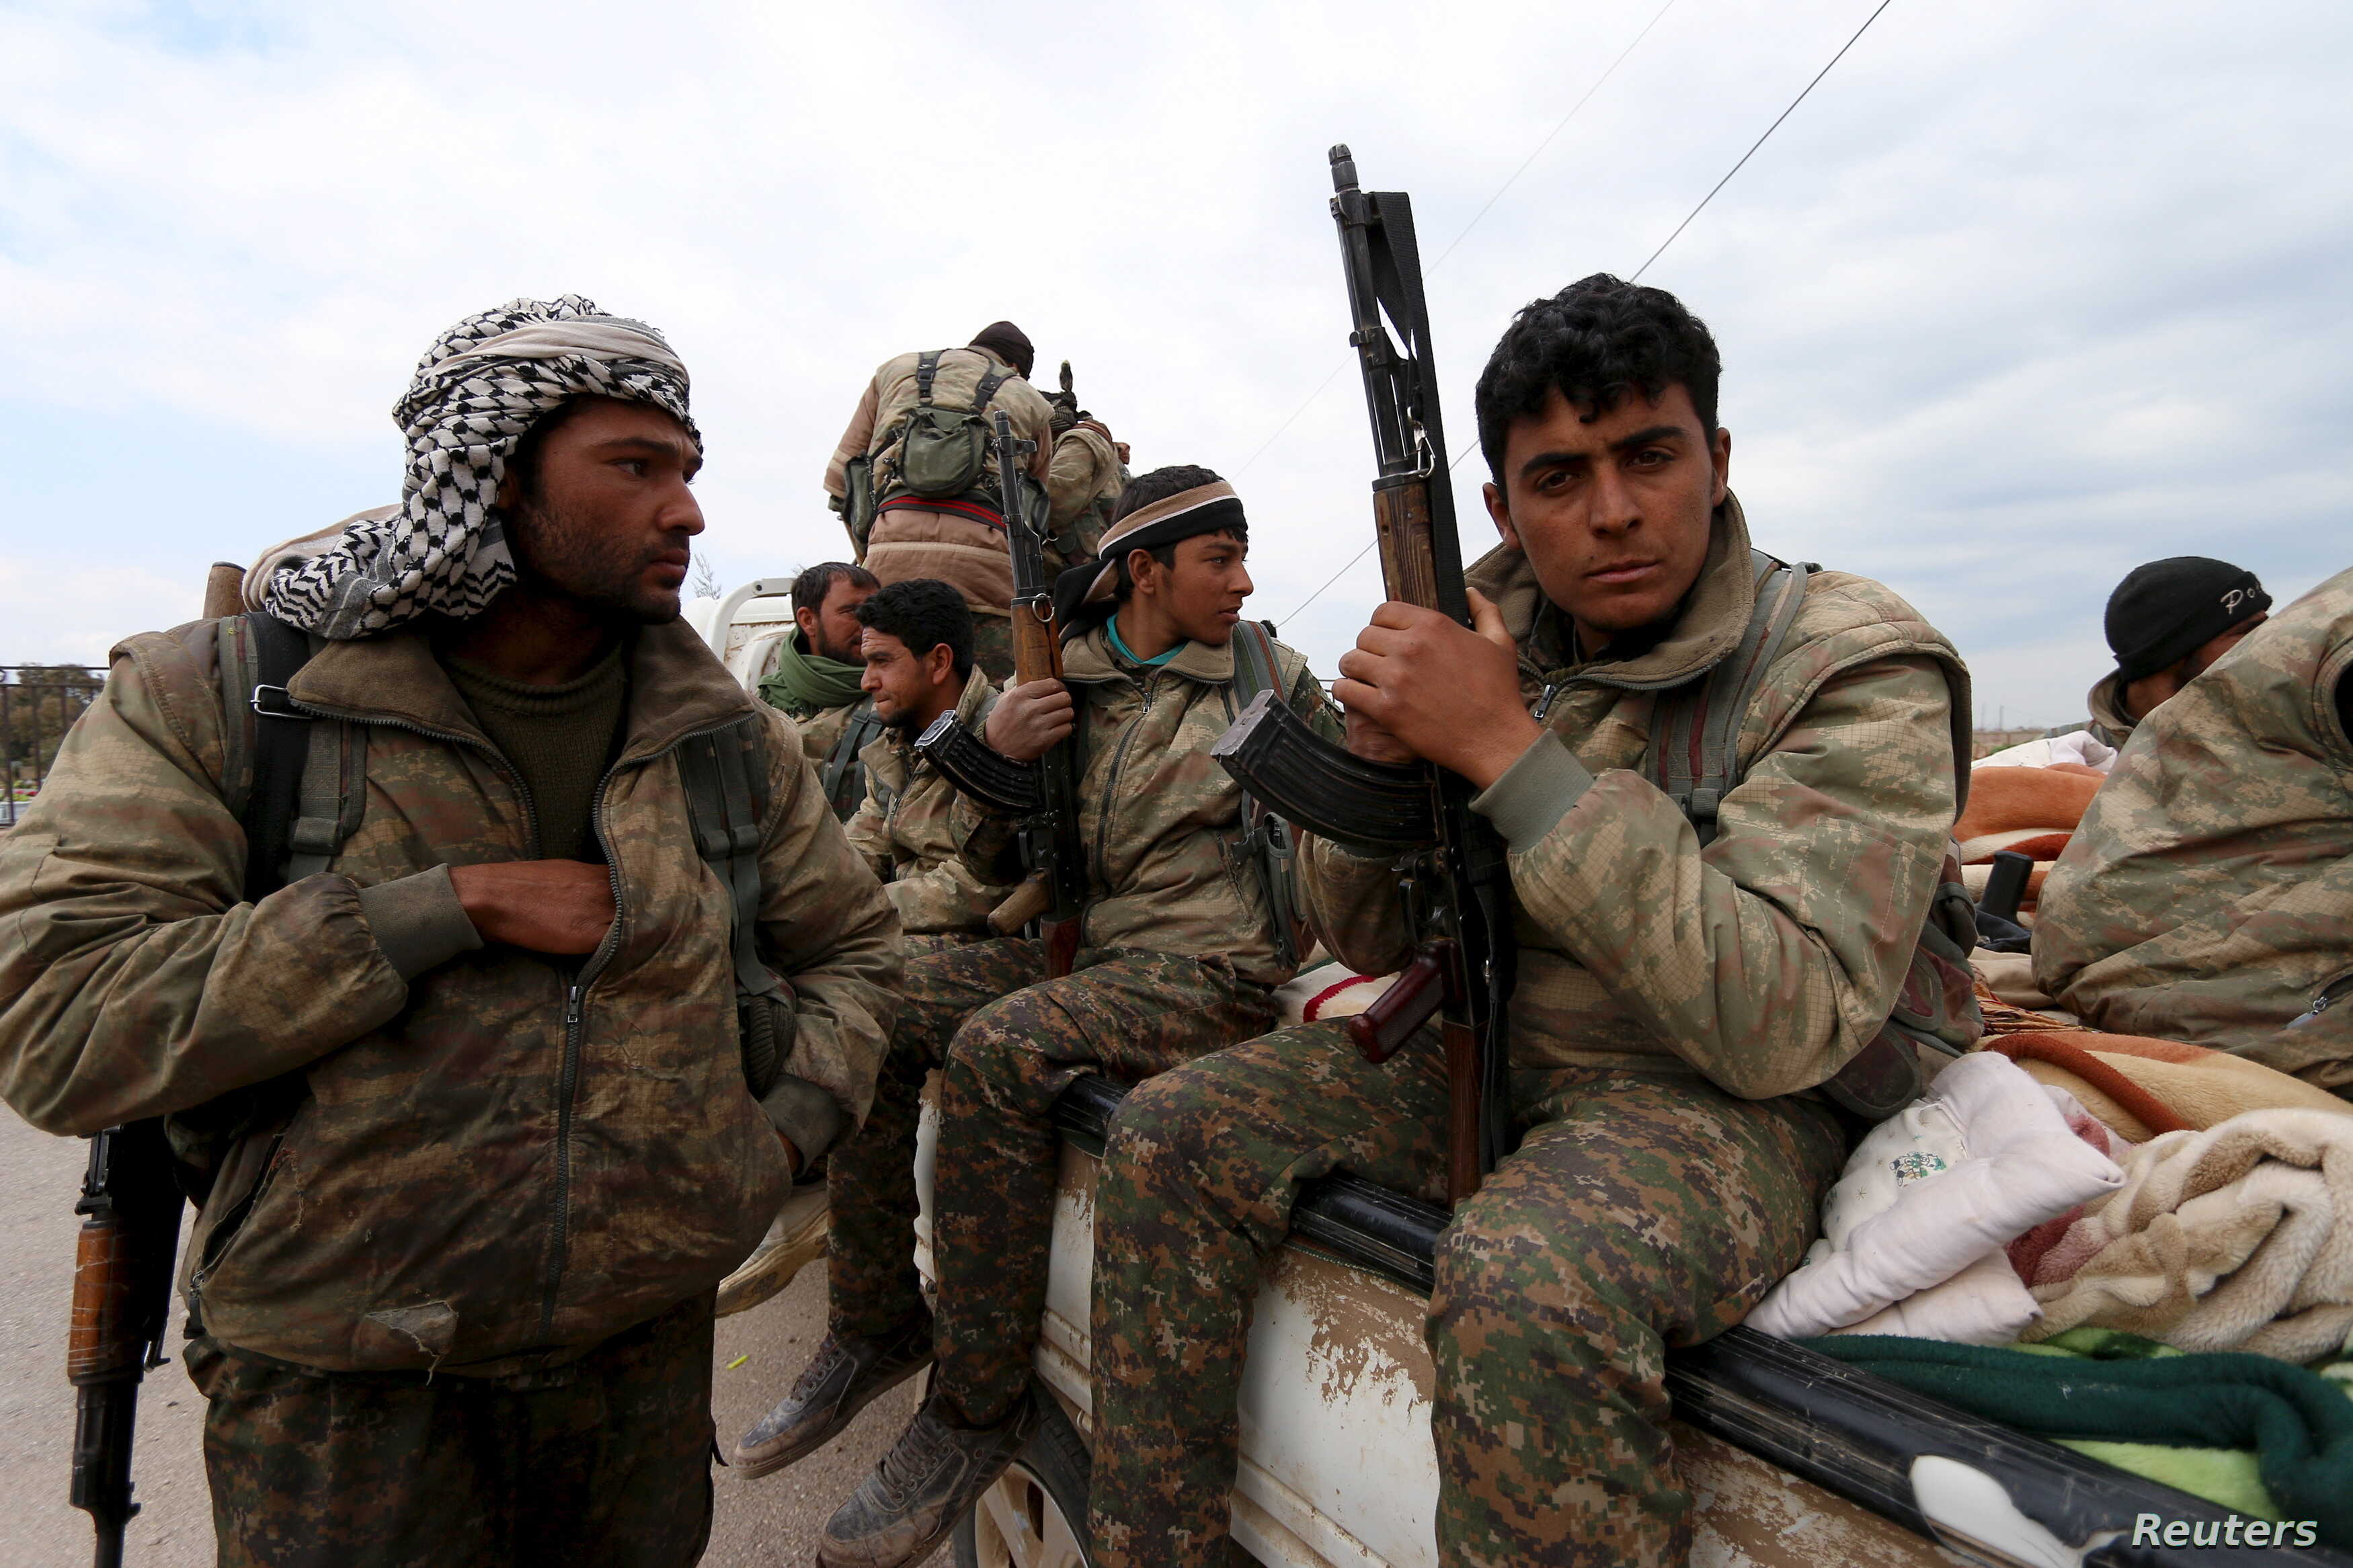 Kurdish People's Protection Units (YPG) fighters carry their weapons while riding on the back of a pick-up truck in Qamishli, Syria, March 11, 2016.